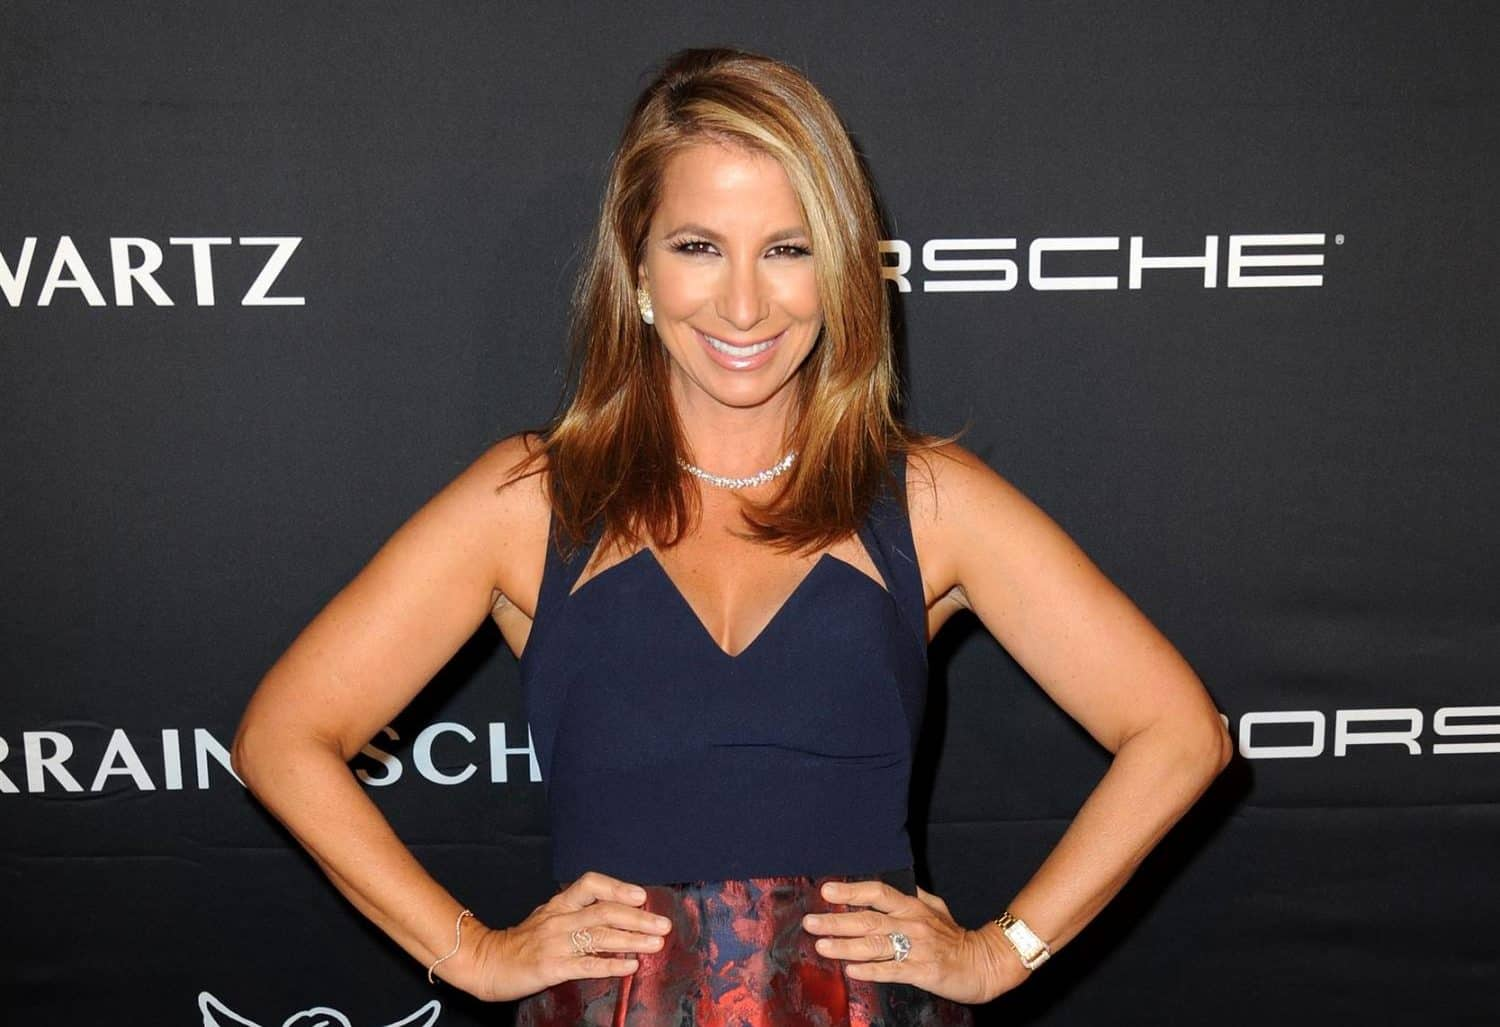 Jill Zarin Promotes Icon Pee-Proof Underwear After RHONY Return